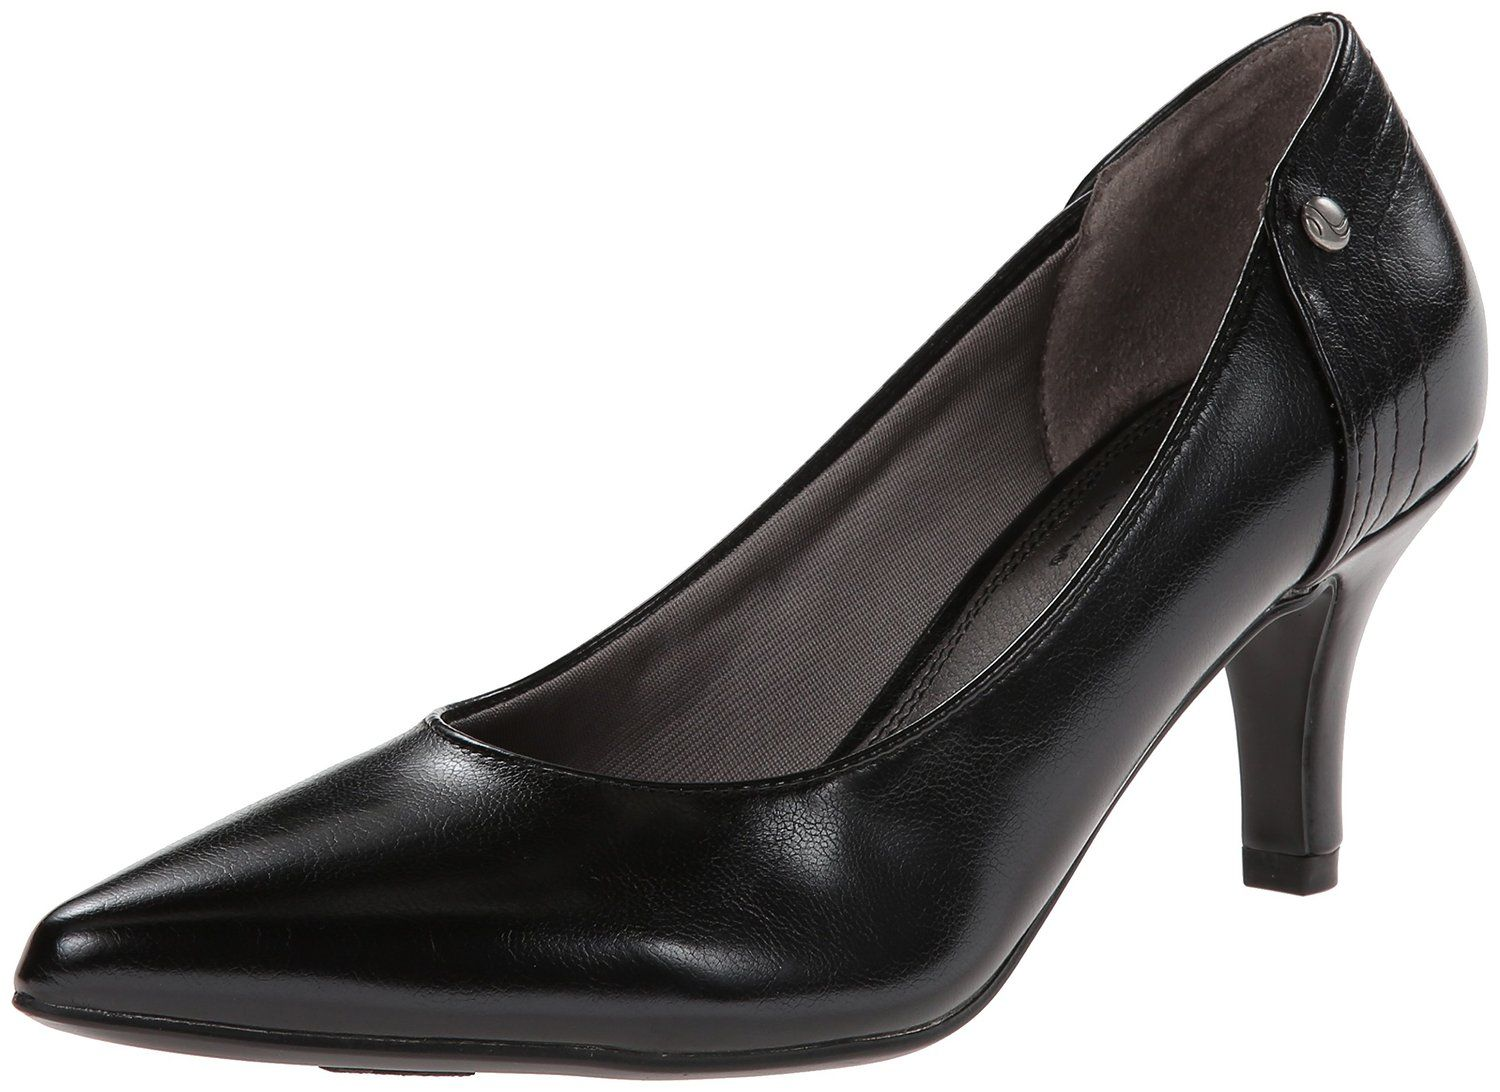 641c9f9d42 Amazon.com: LifeStride Women's Star Dress Pump: Shoes - literally the first  tapered-heel pumps I've ever bought, because for whatever reason, ...